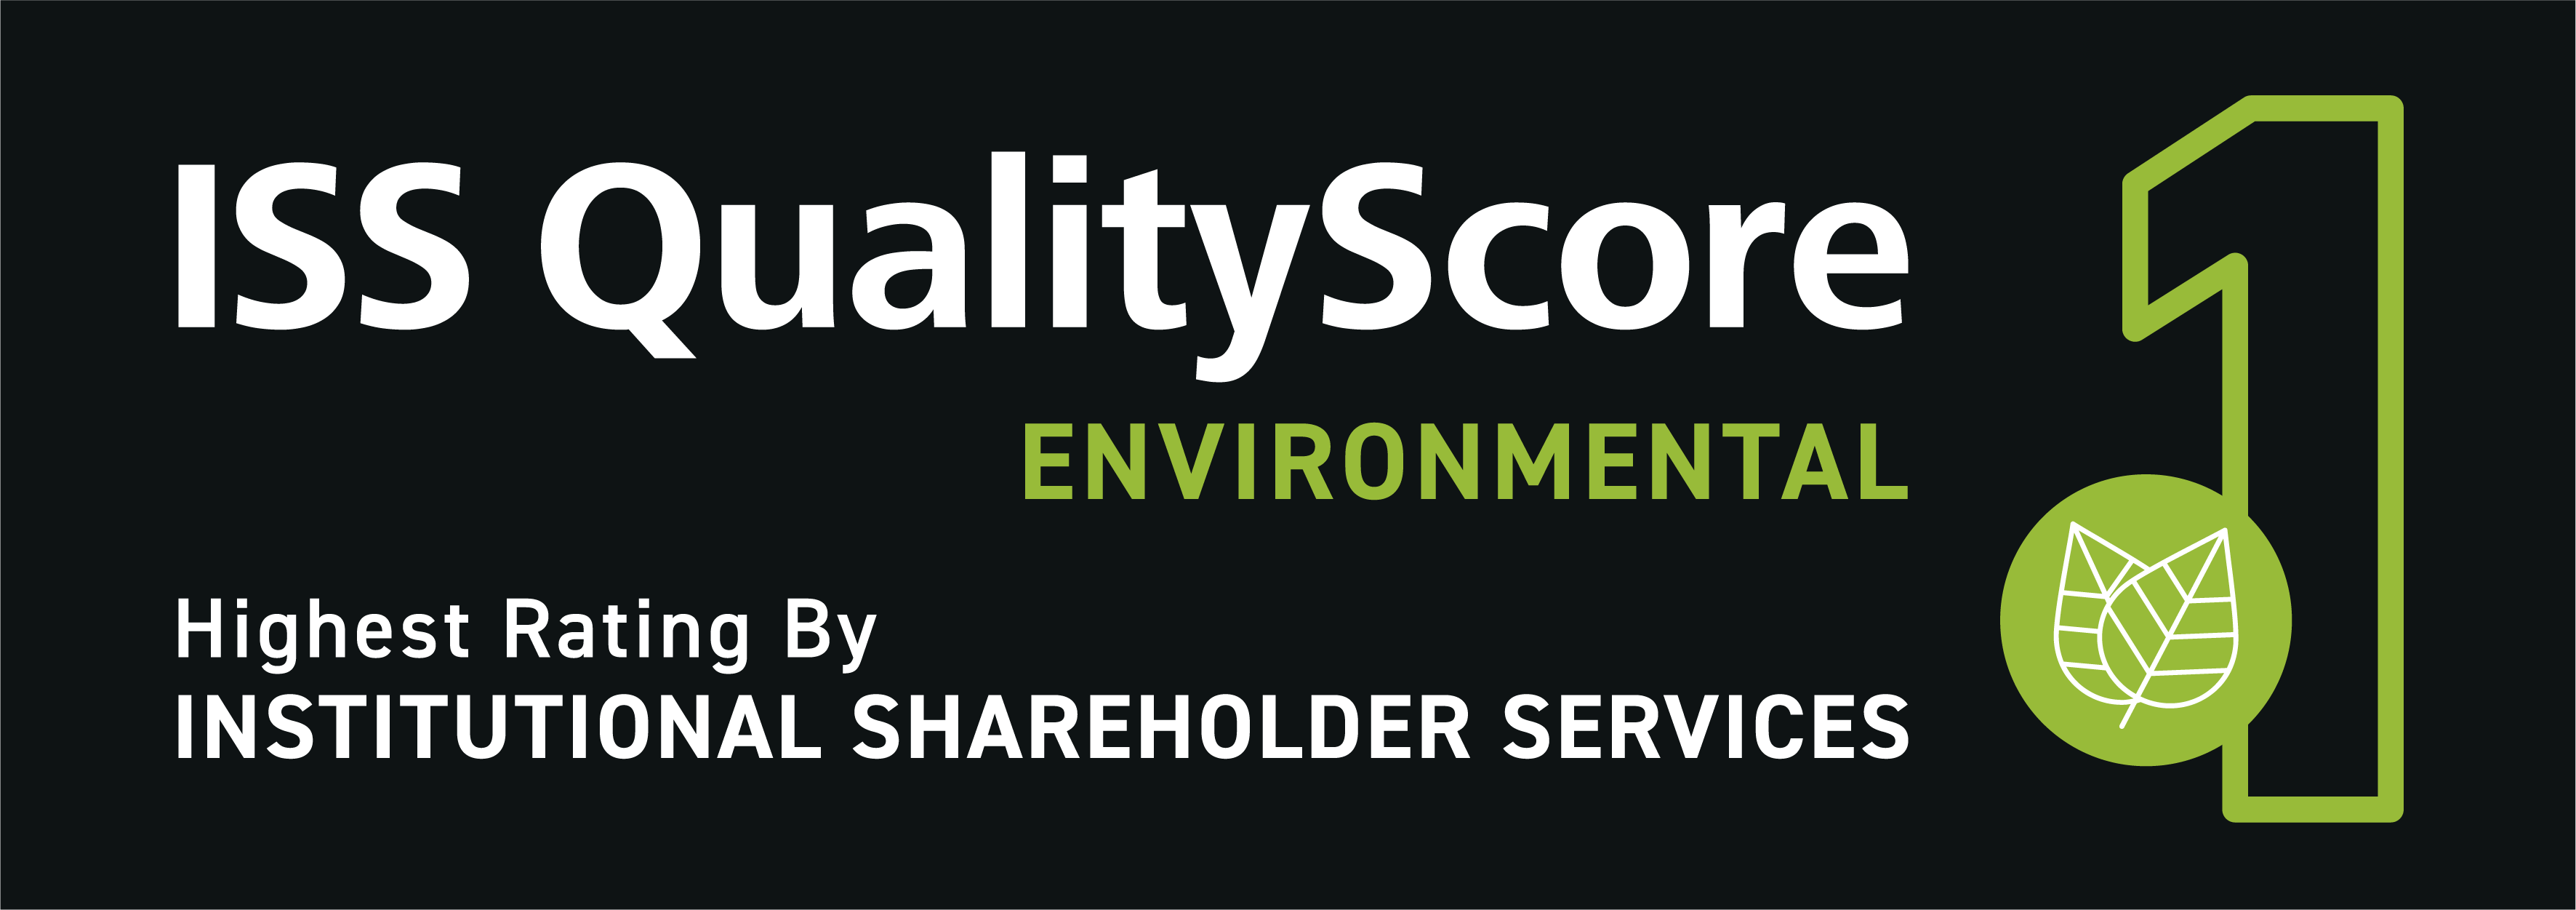 Text: ISS QualityScore Environmental 1. Highest rating by Institutional Shareholder Services